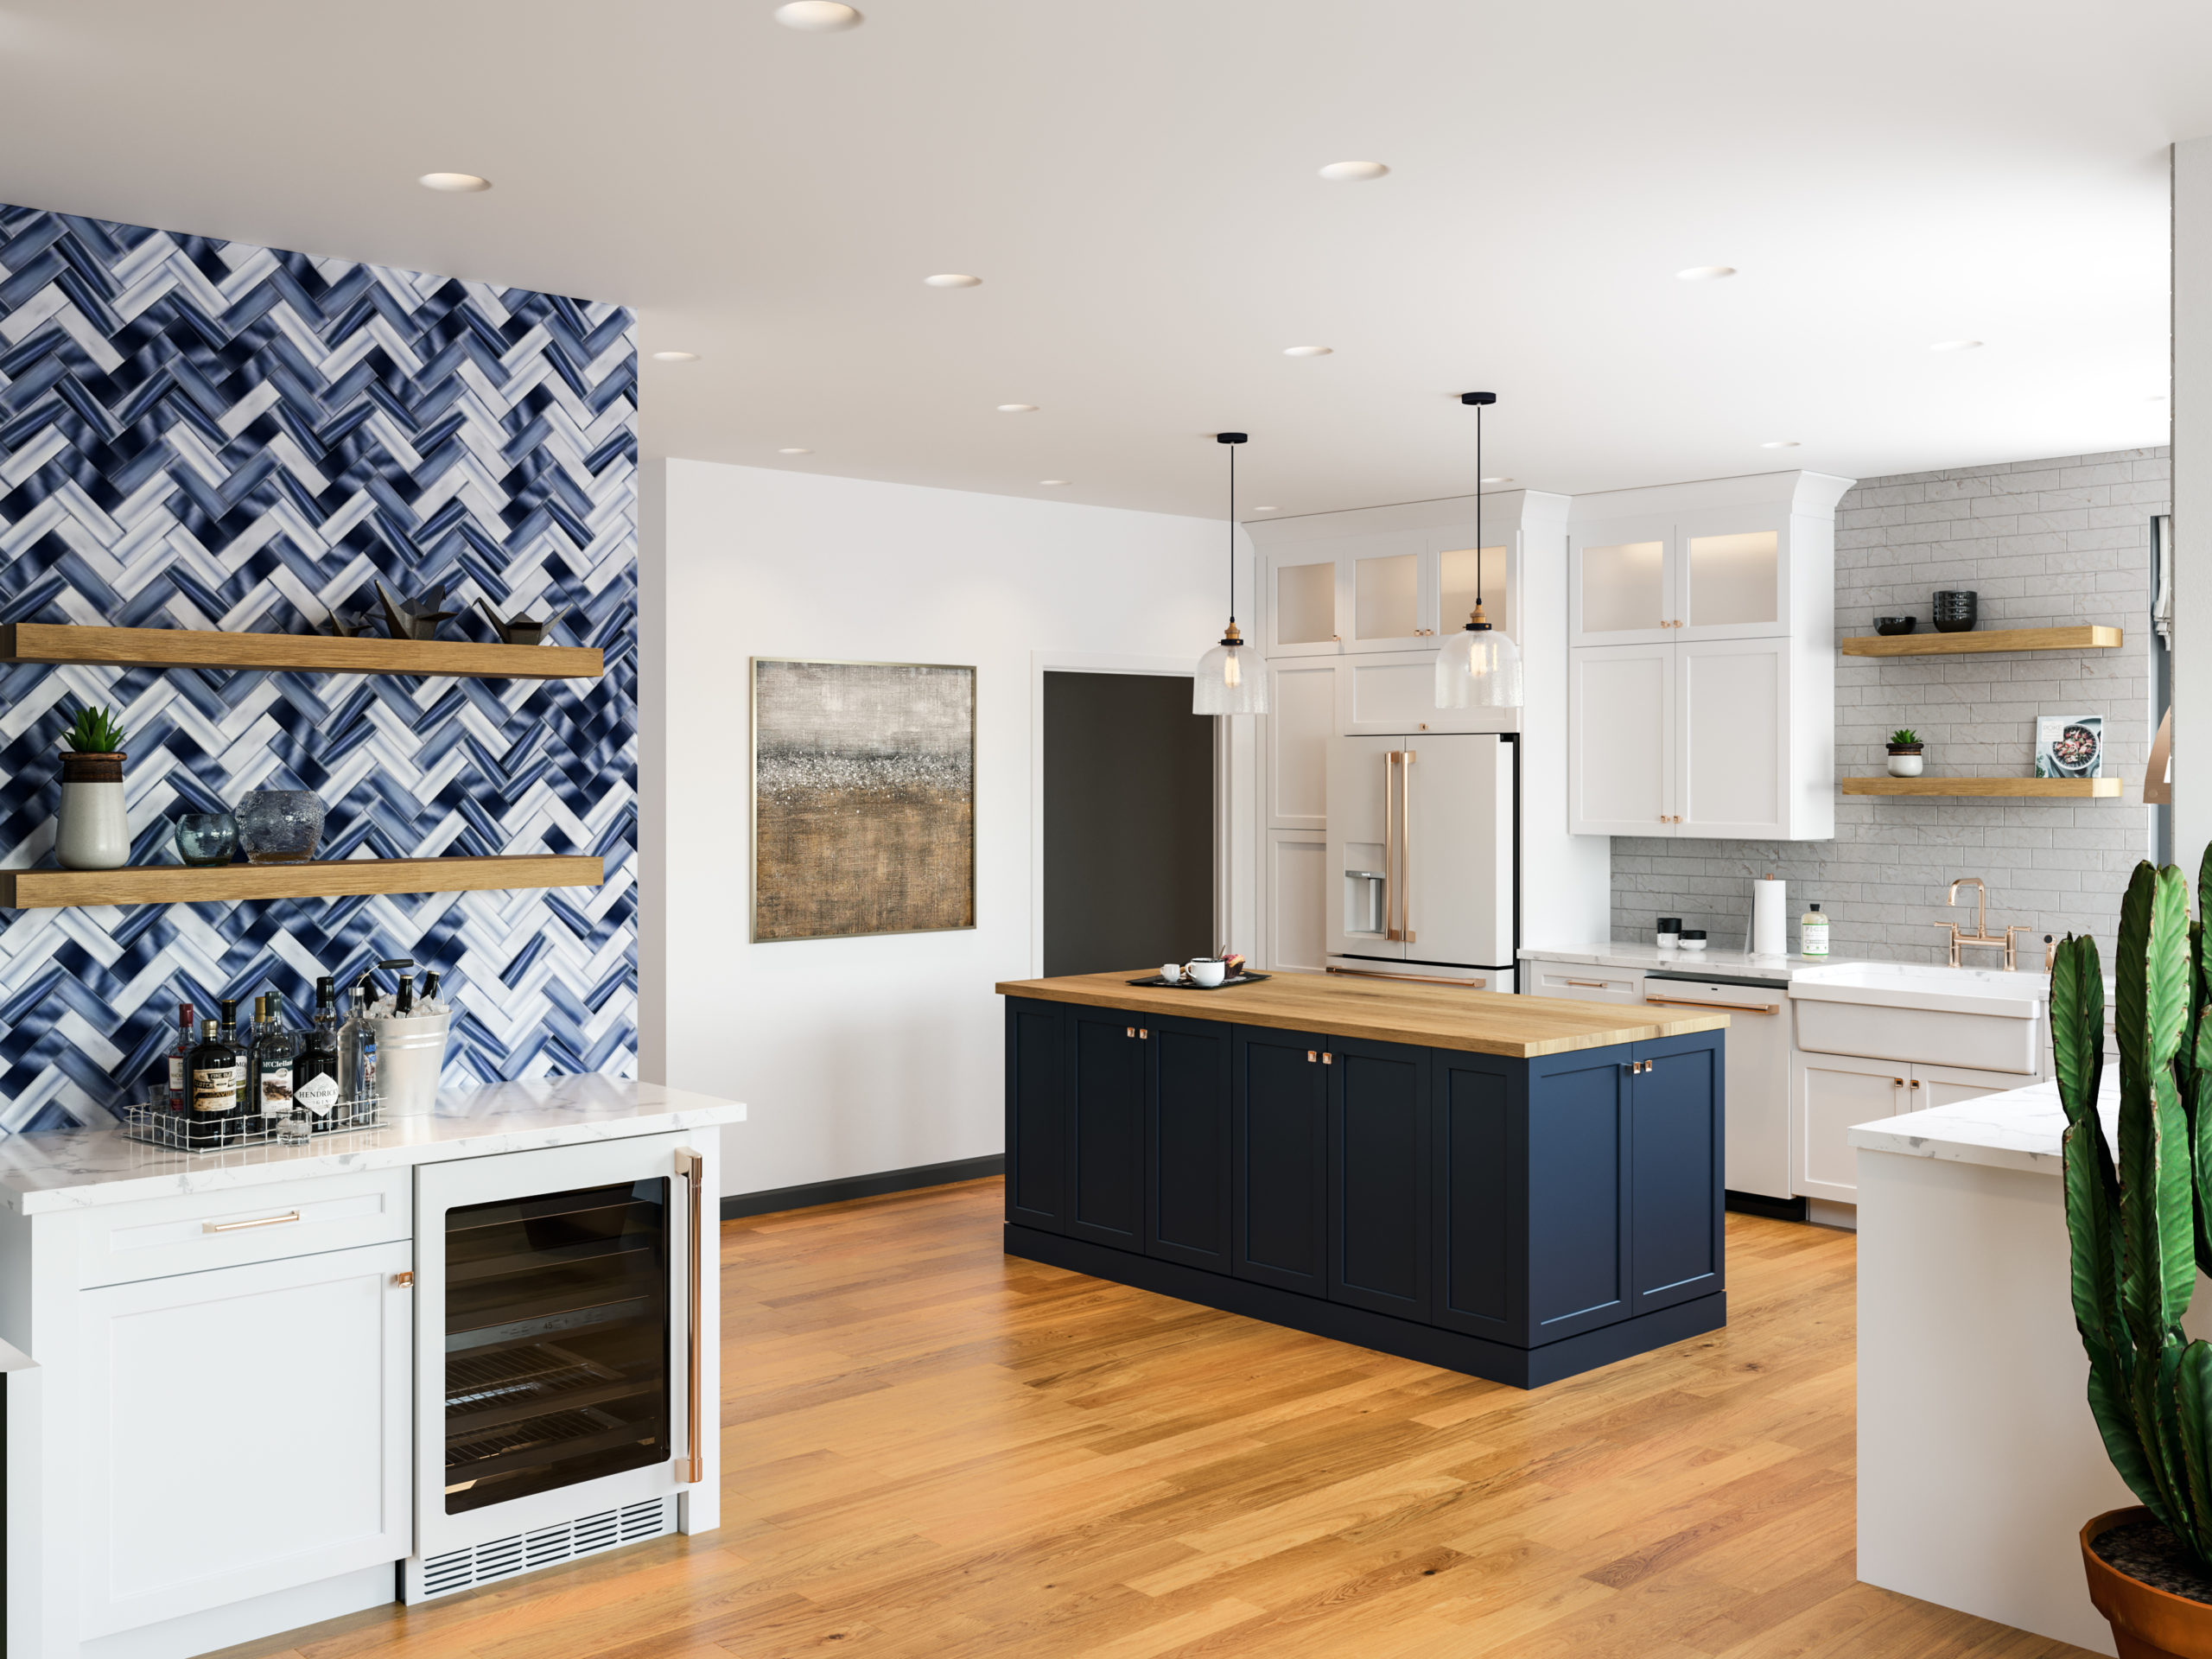 Remodel Review: Waypoint vs. Dura Supreme Cabinetry